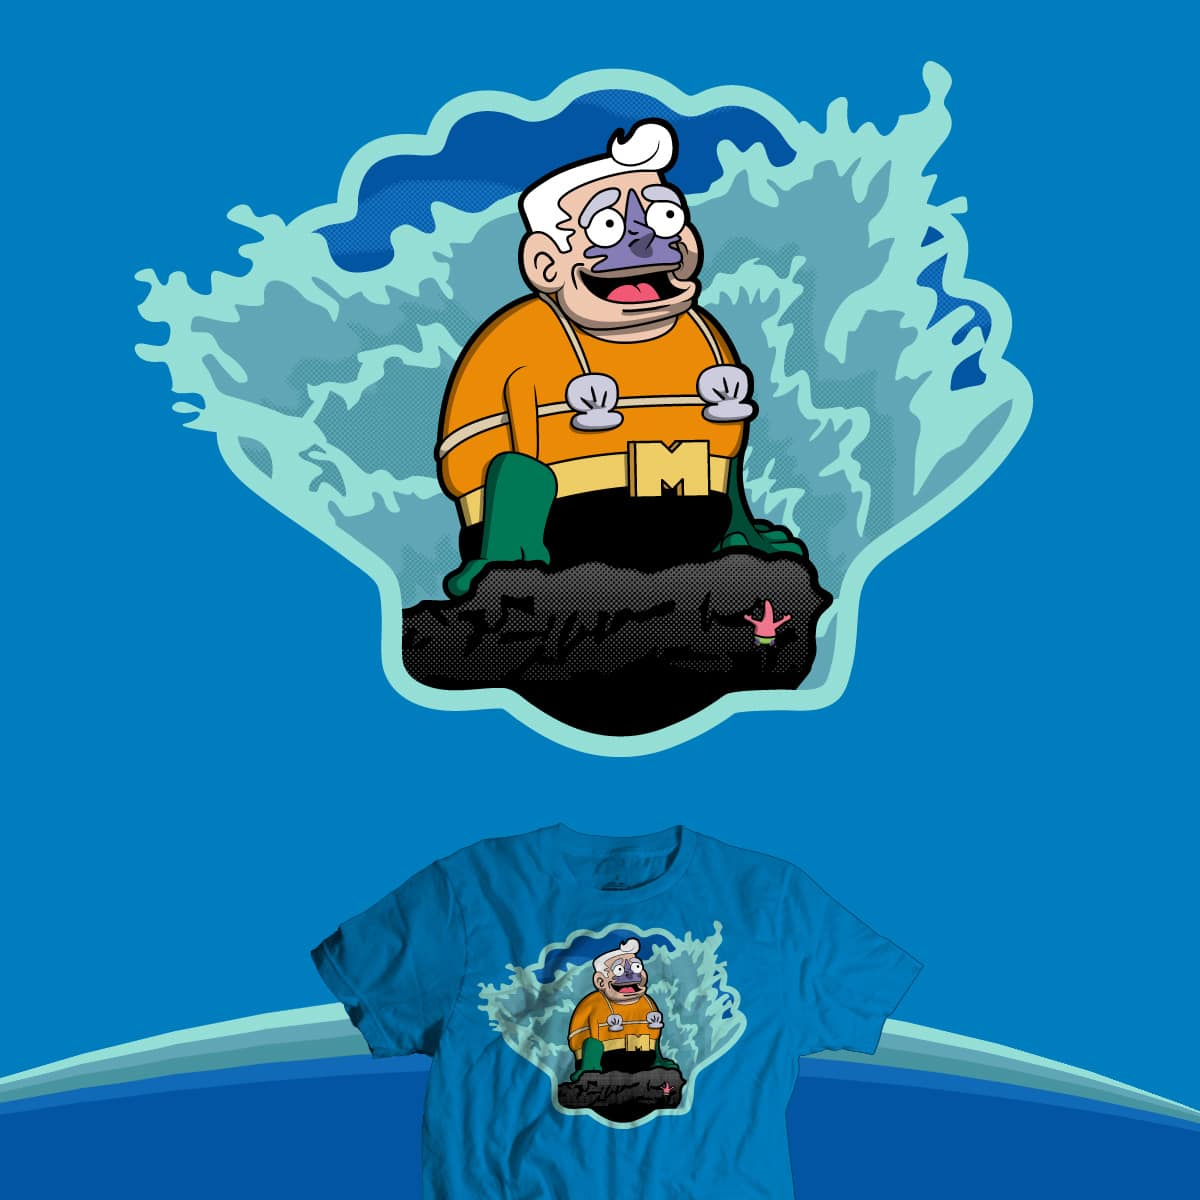 Little Mermaid Man by Papaprime on Threadless